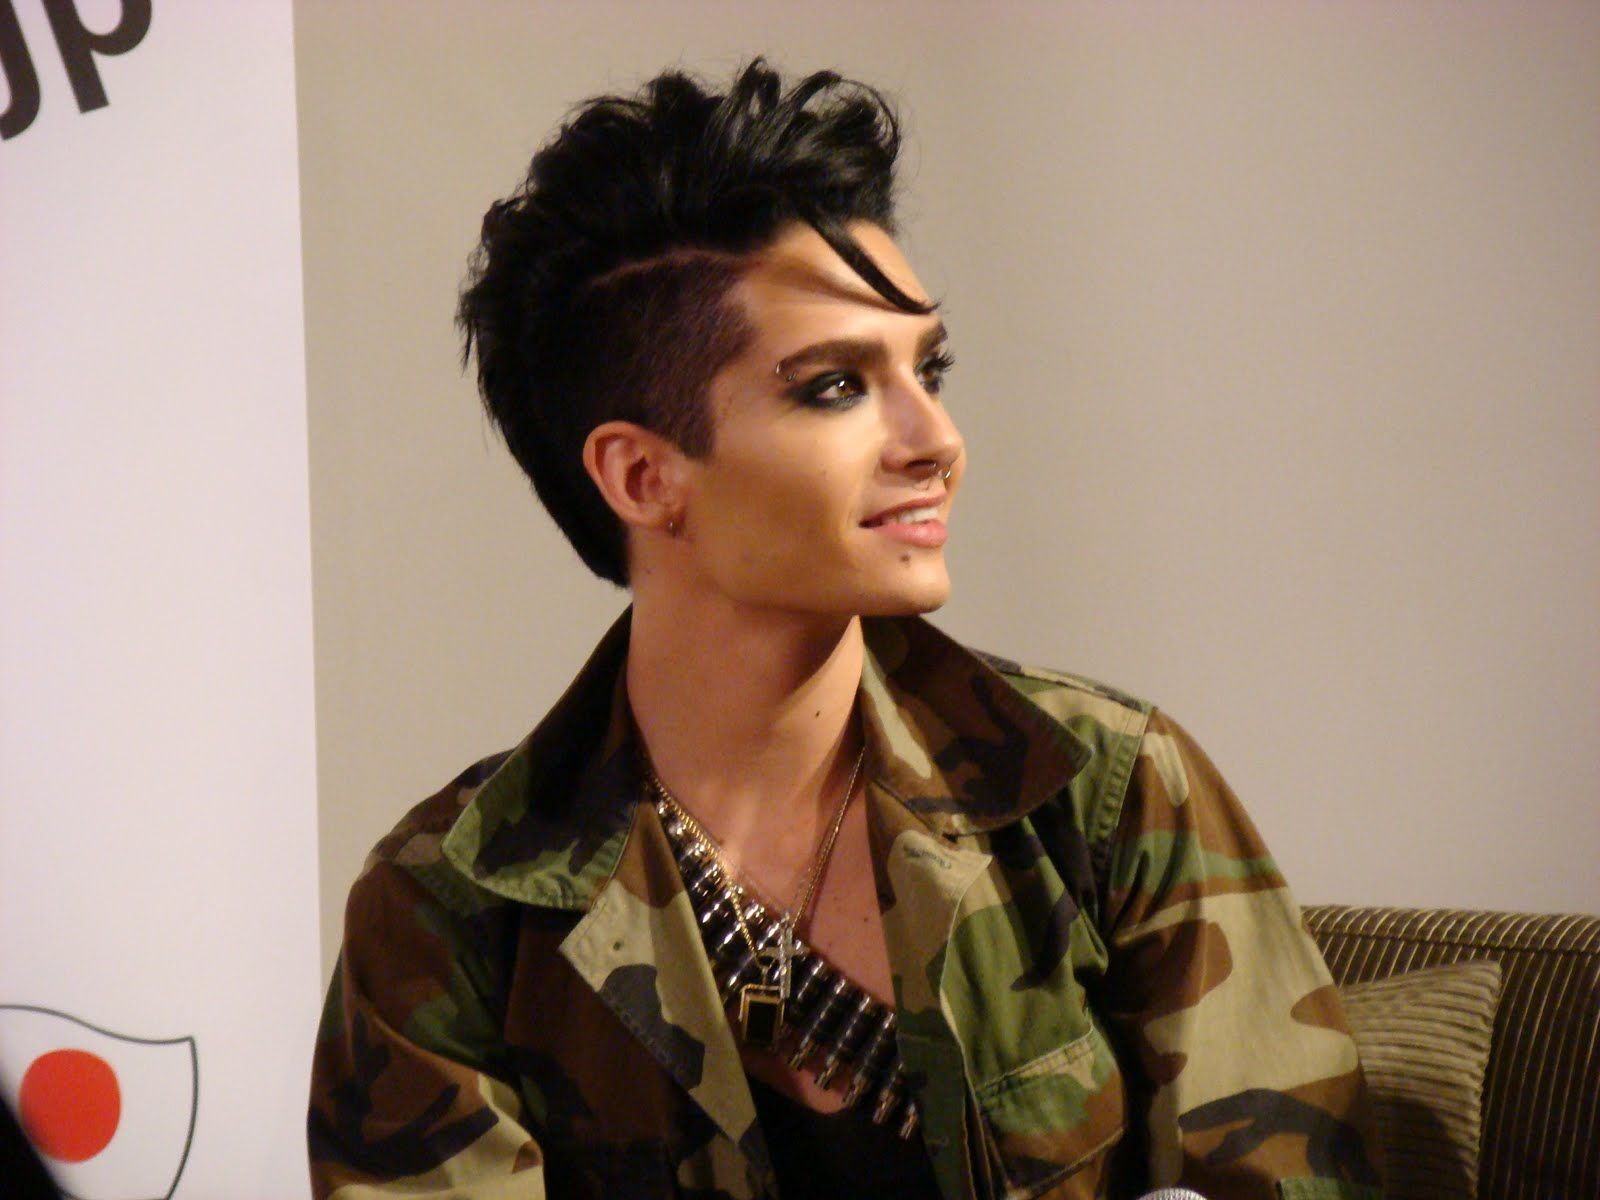 Bill Kaulitz Singer Of Tokio Hotel Idea